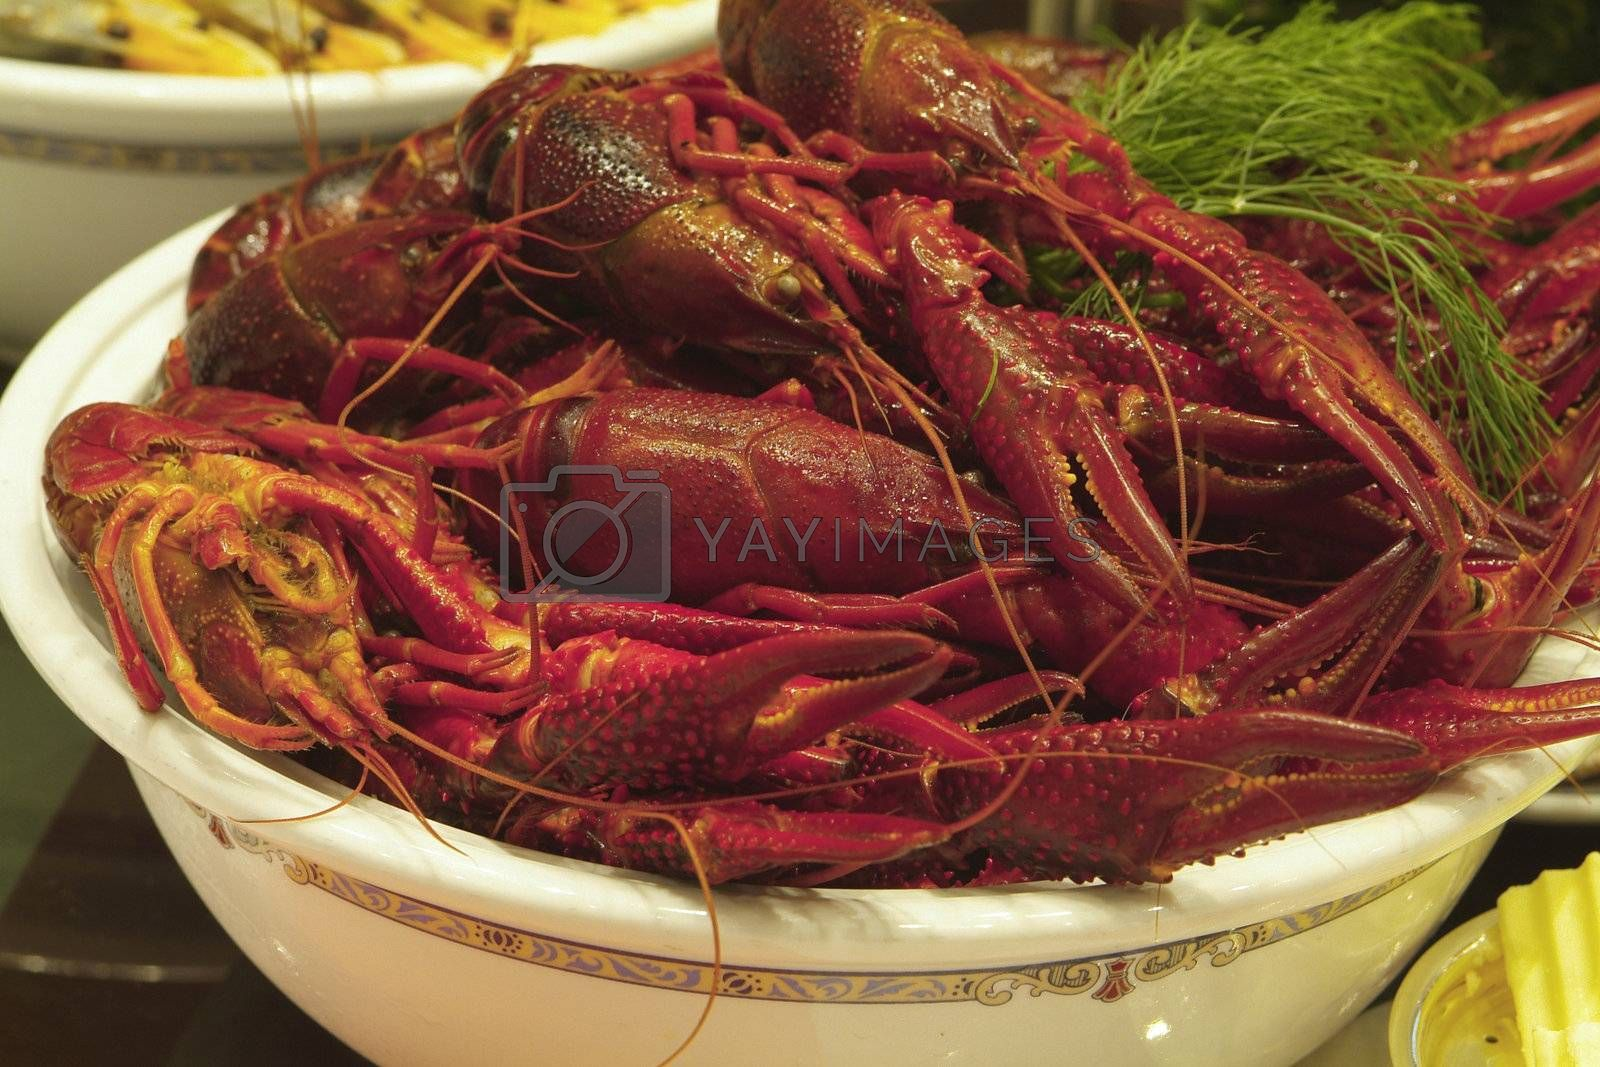 Bowl of crayfish by epixx